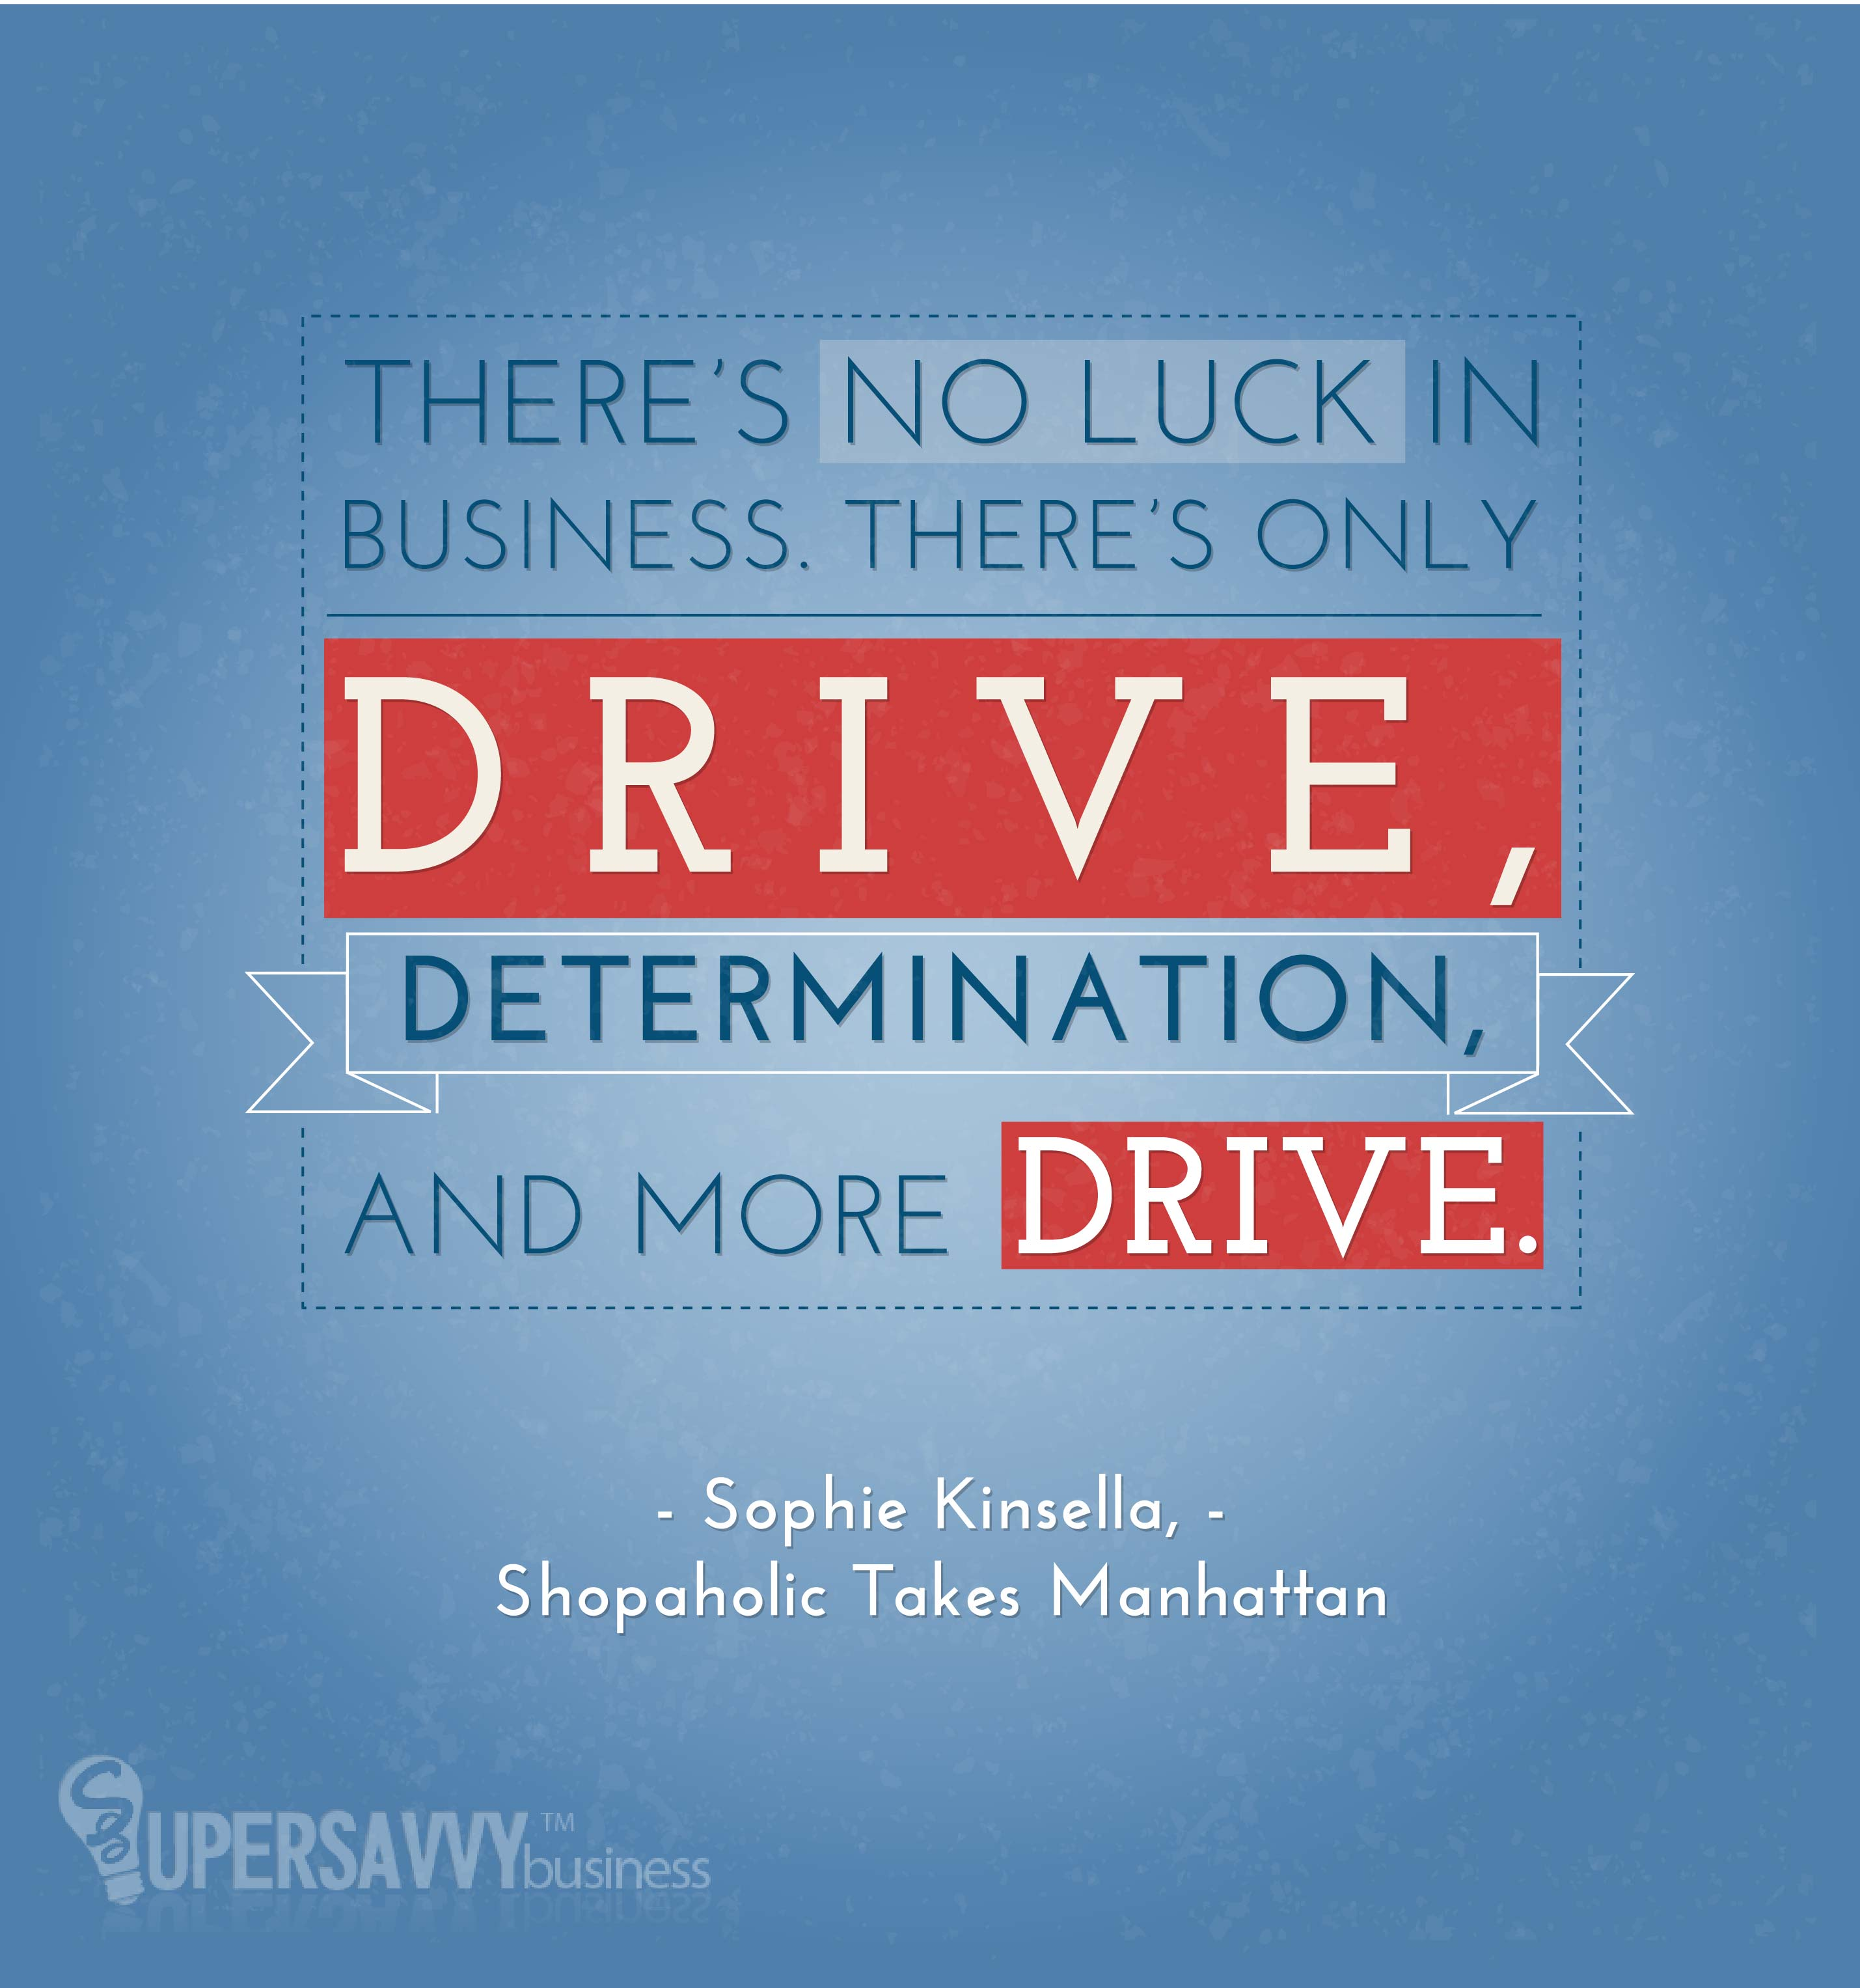 Persistence Motivational Quotes: Quotes About Determination And Drive. QuotesGram